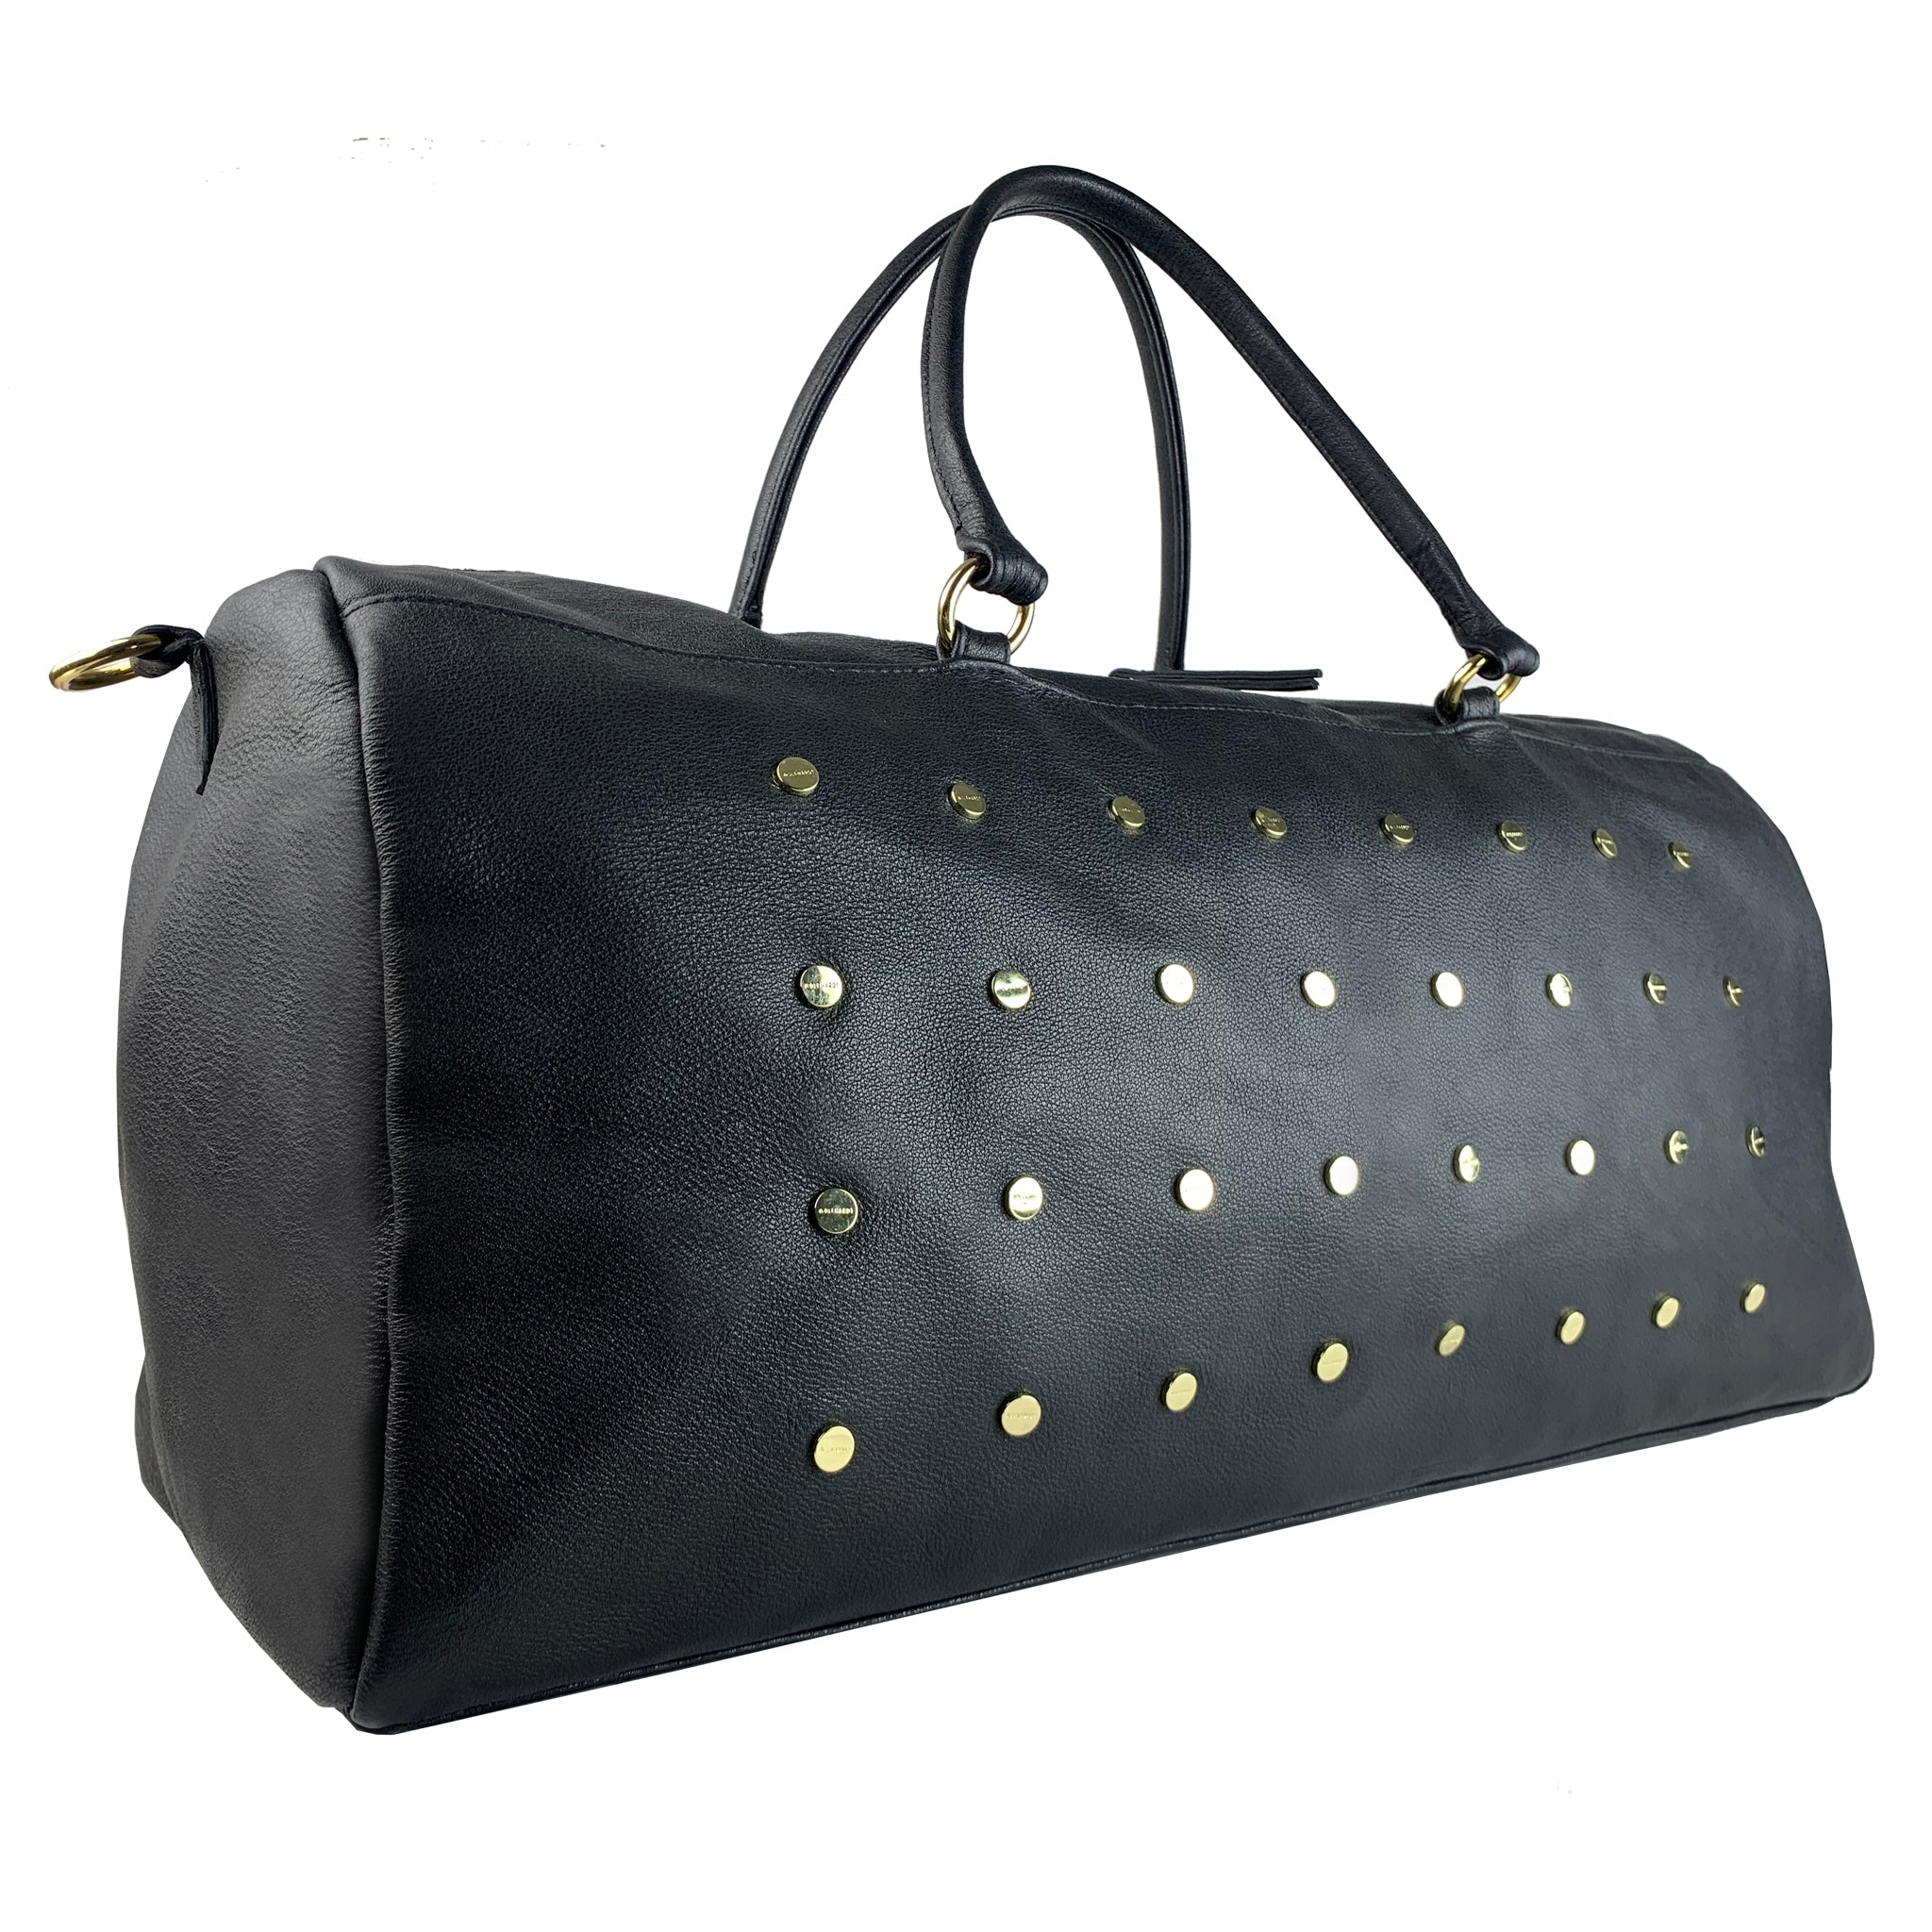 BLACK LEATHER STUDDED DUO WEEKENDER TRAVEL BAG